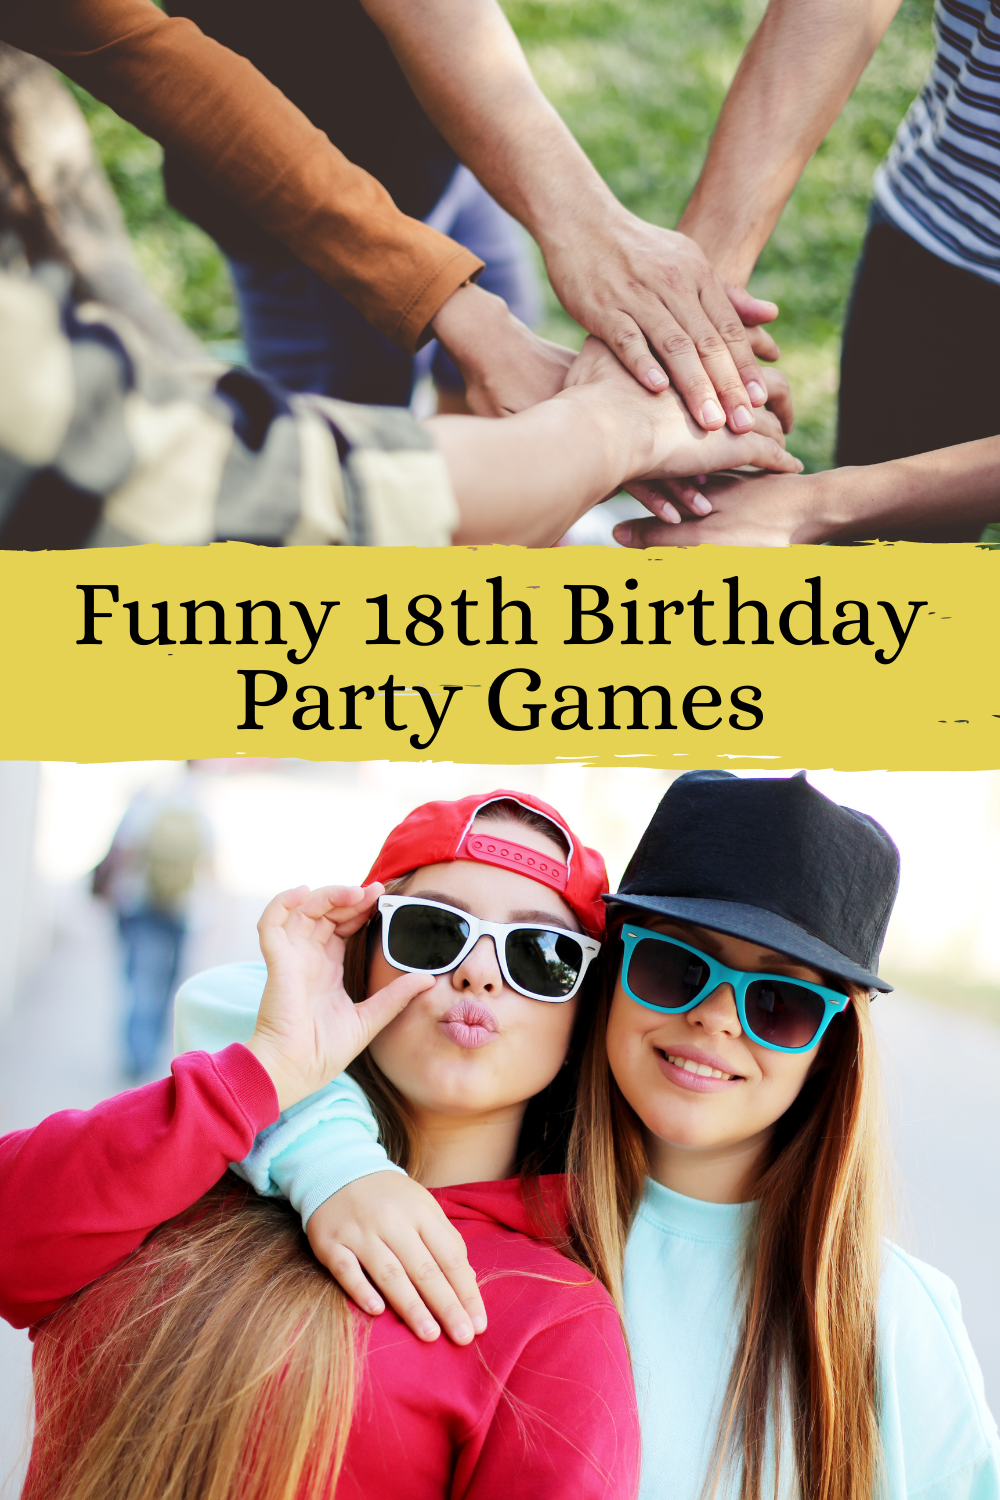 Funny 18th Birthday Party Games To Play With A Group